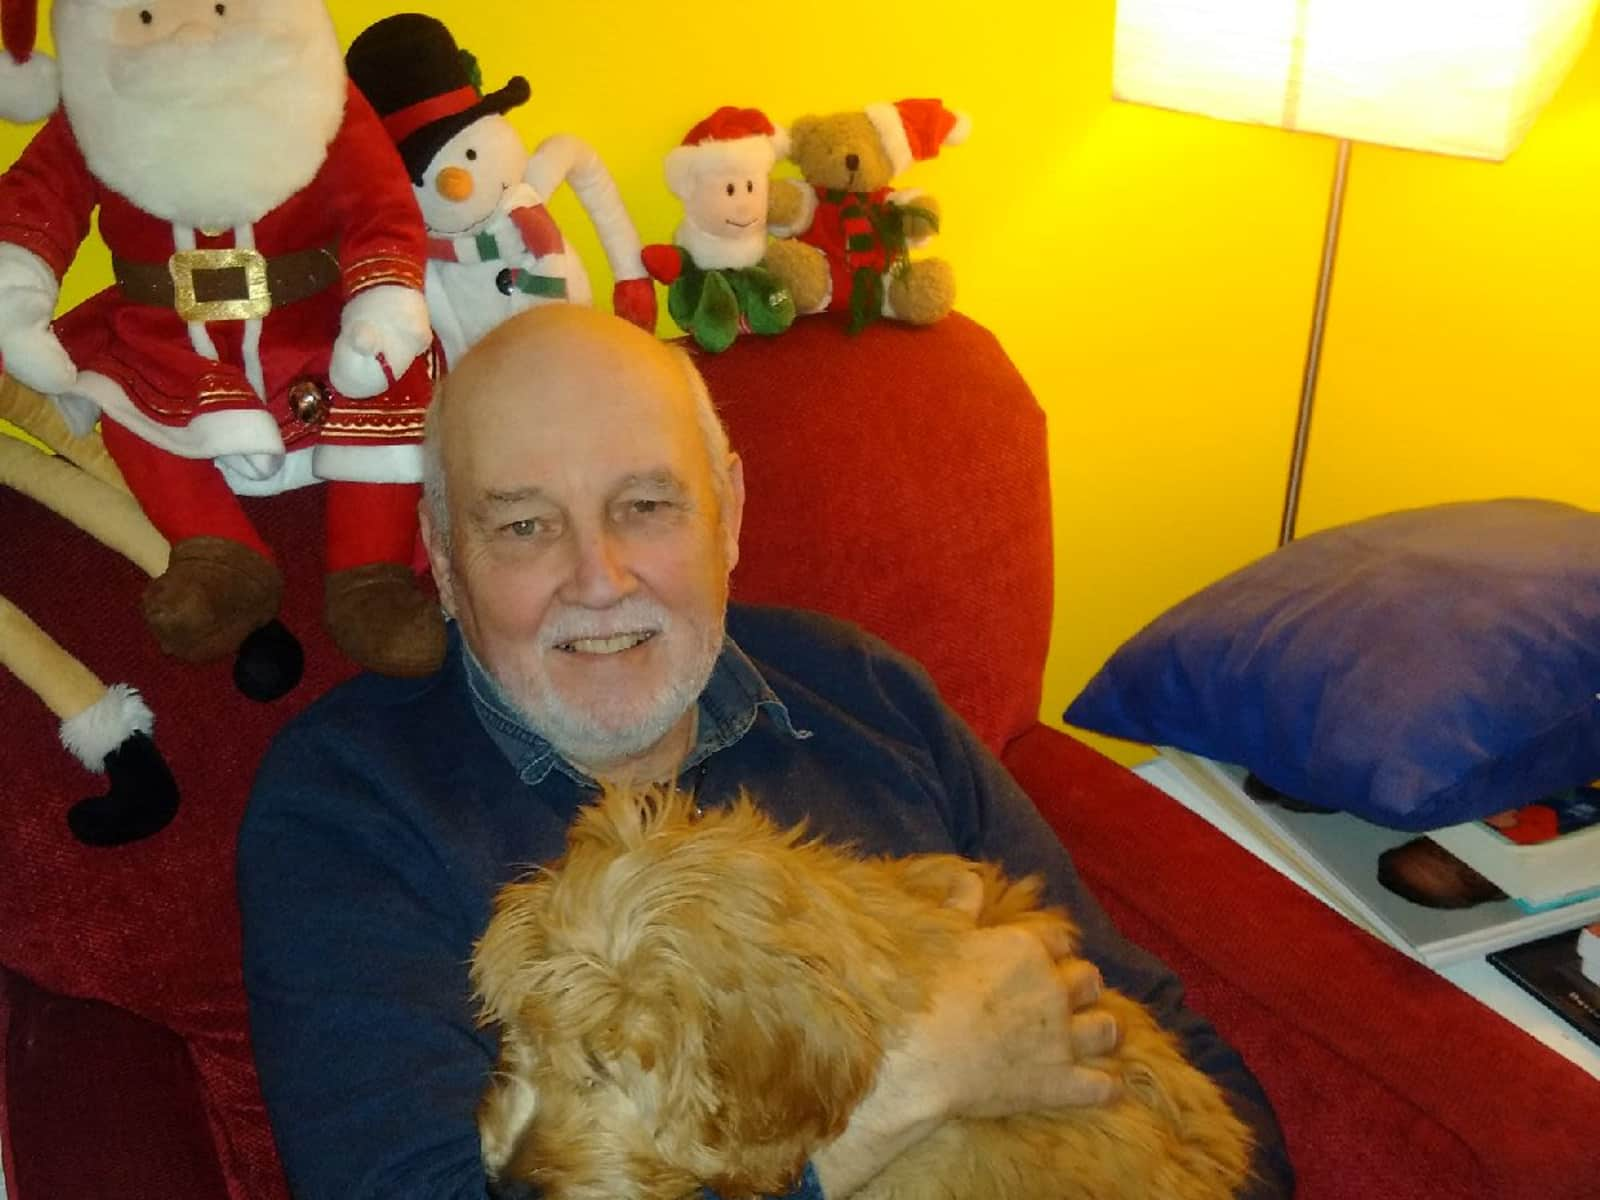 Cliff & Joesiie from Halifax, Nova Scotia, Canada